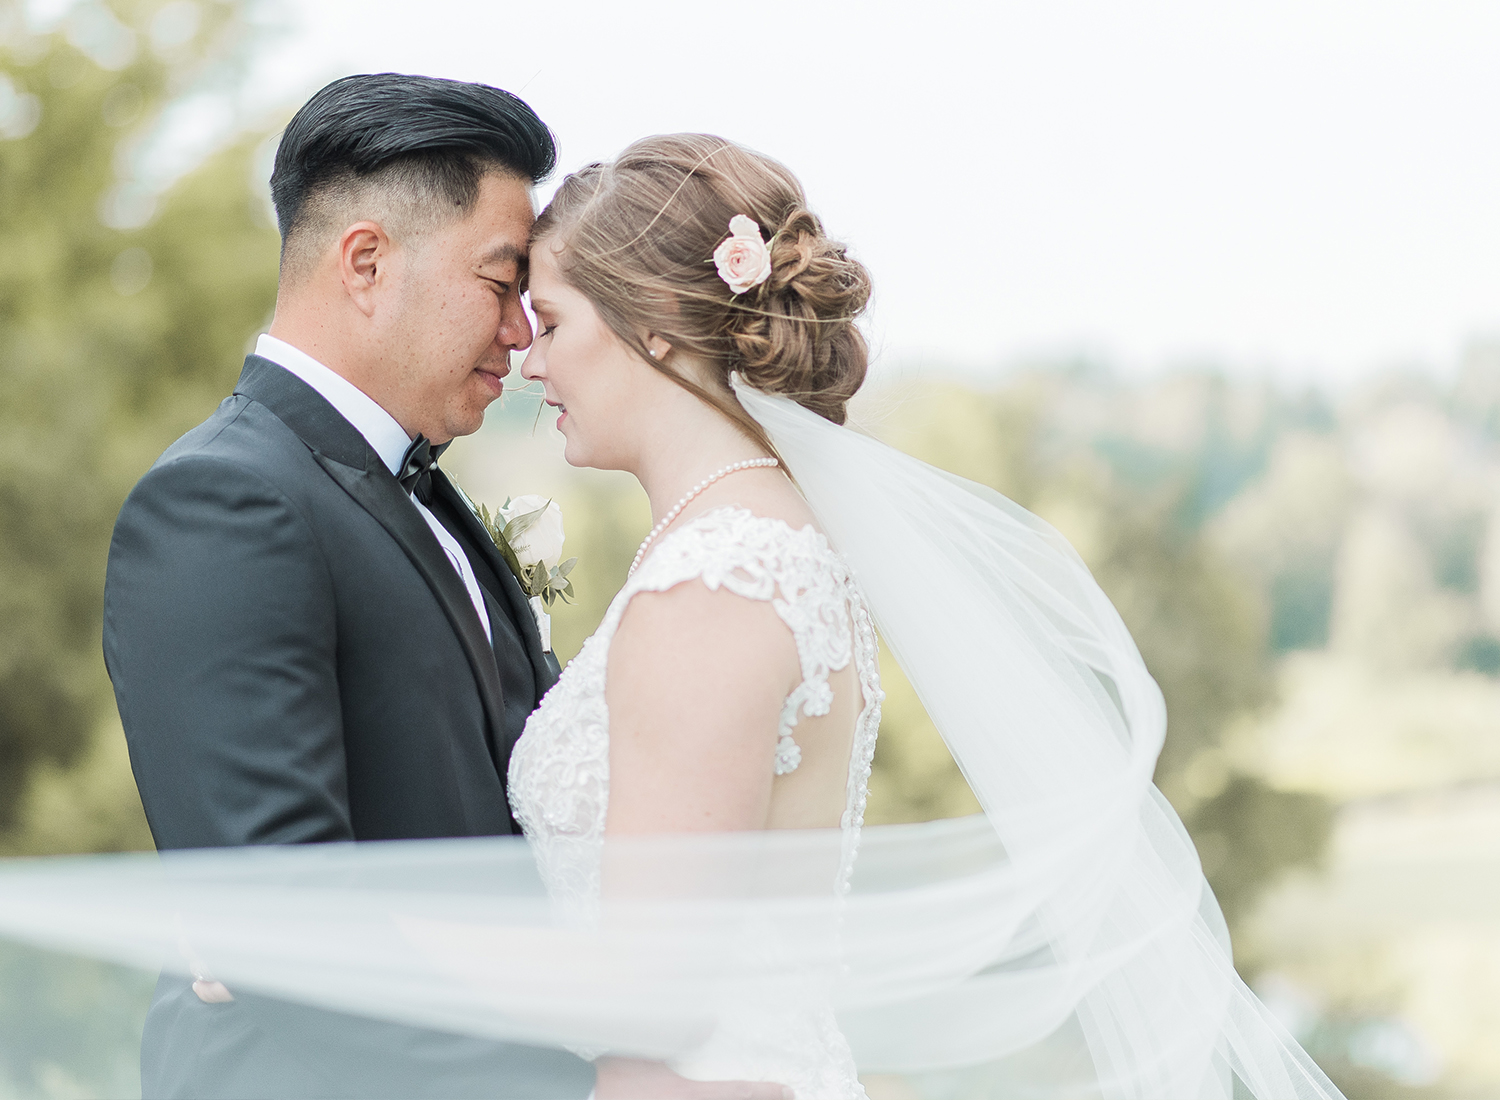 bride and groom posing with veil blowing in wind